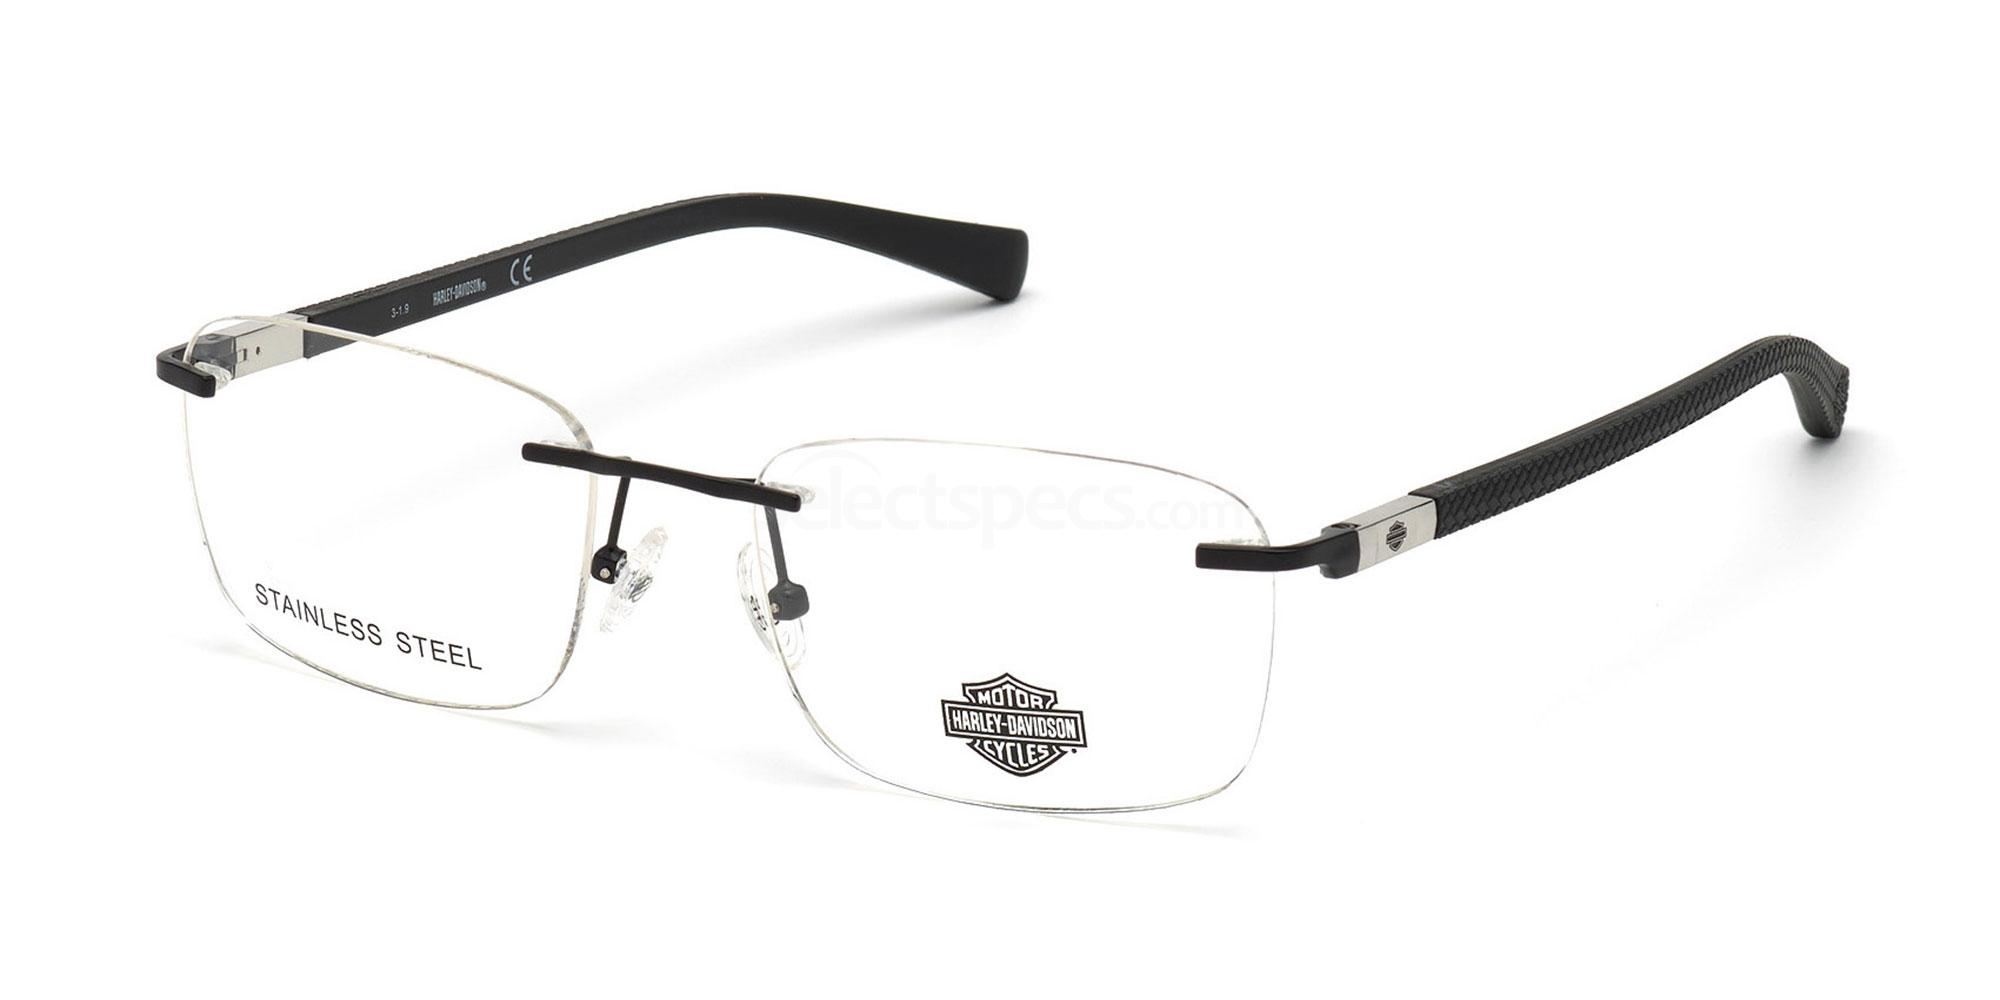 002 HD0810 Glasses, Harley Davidson